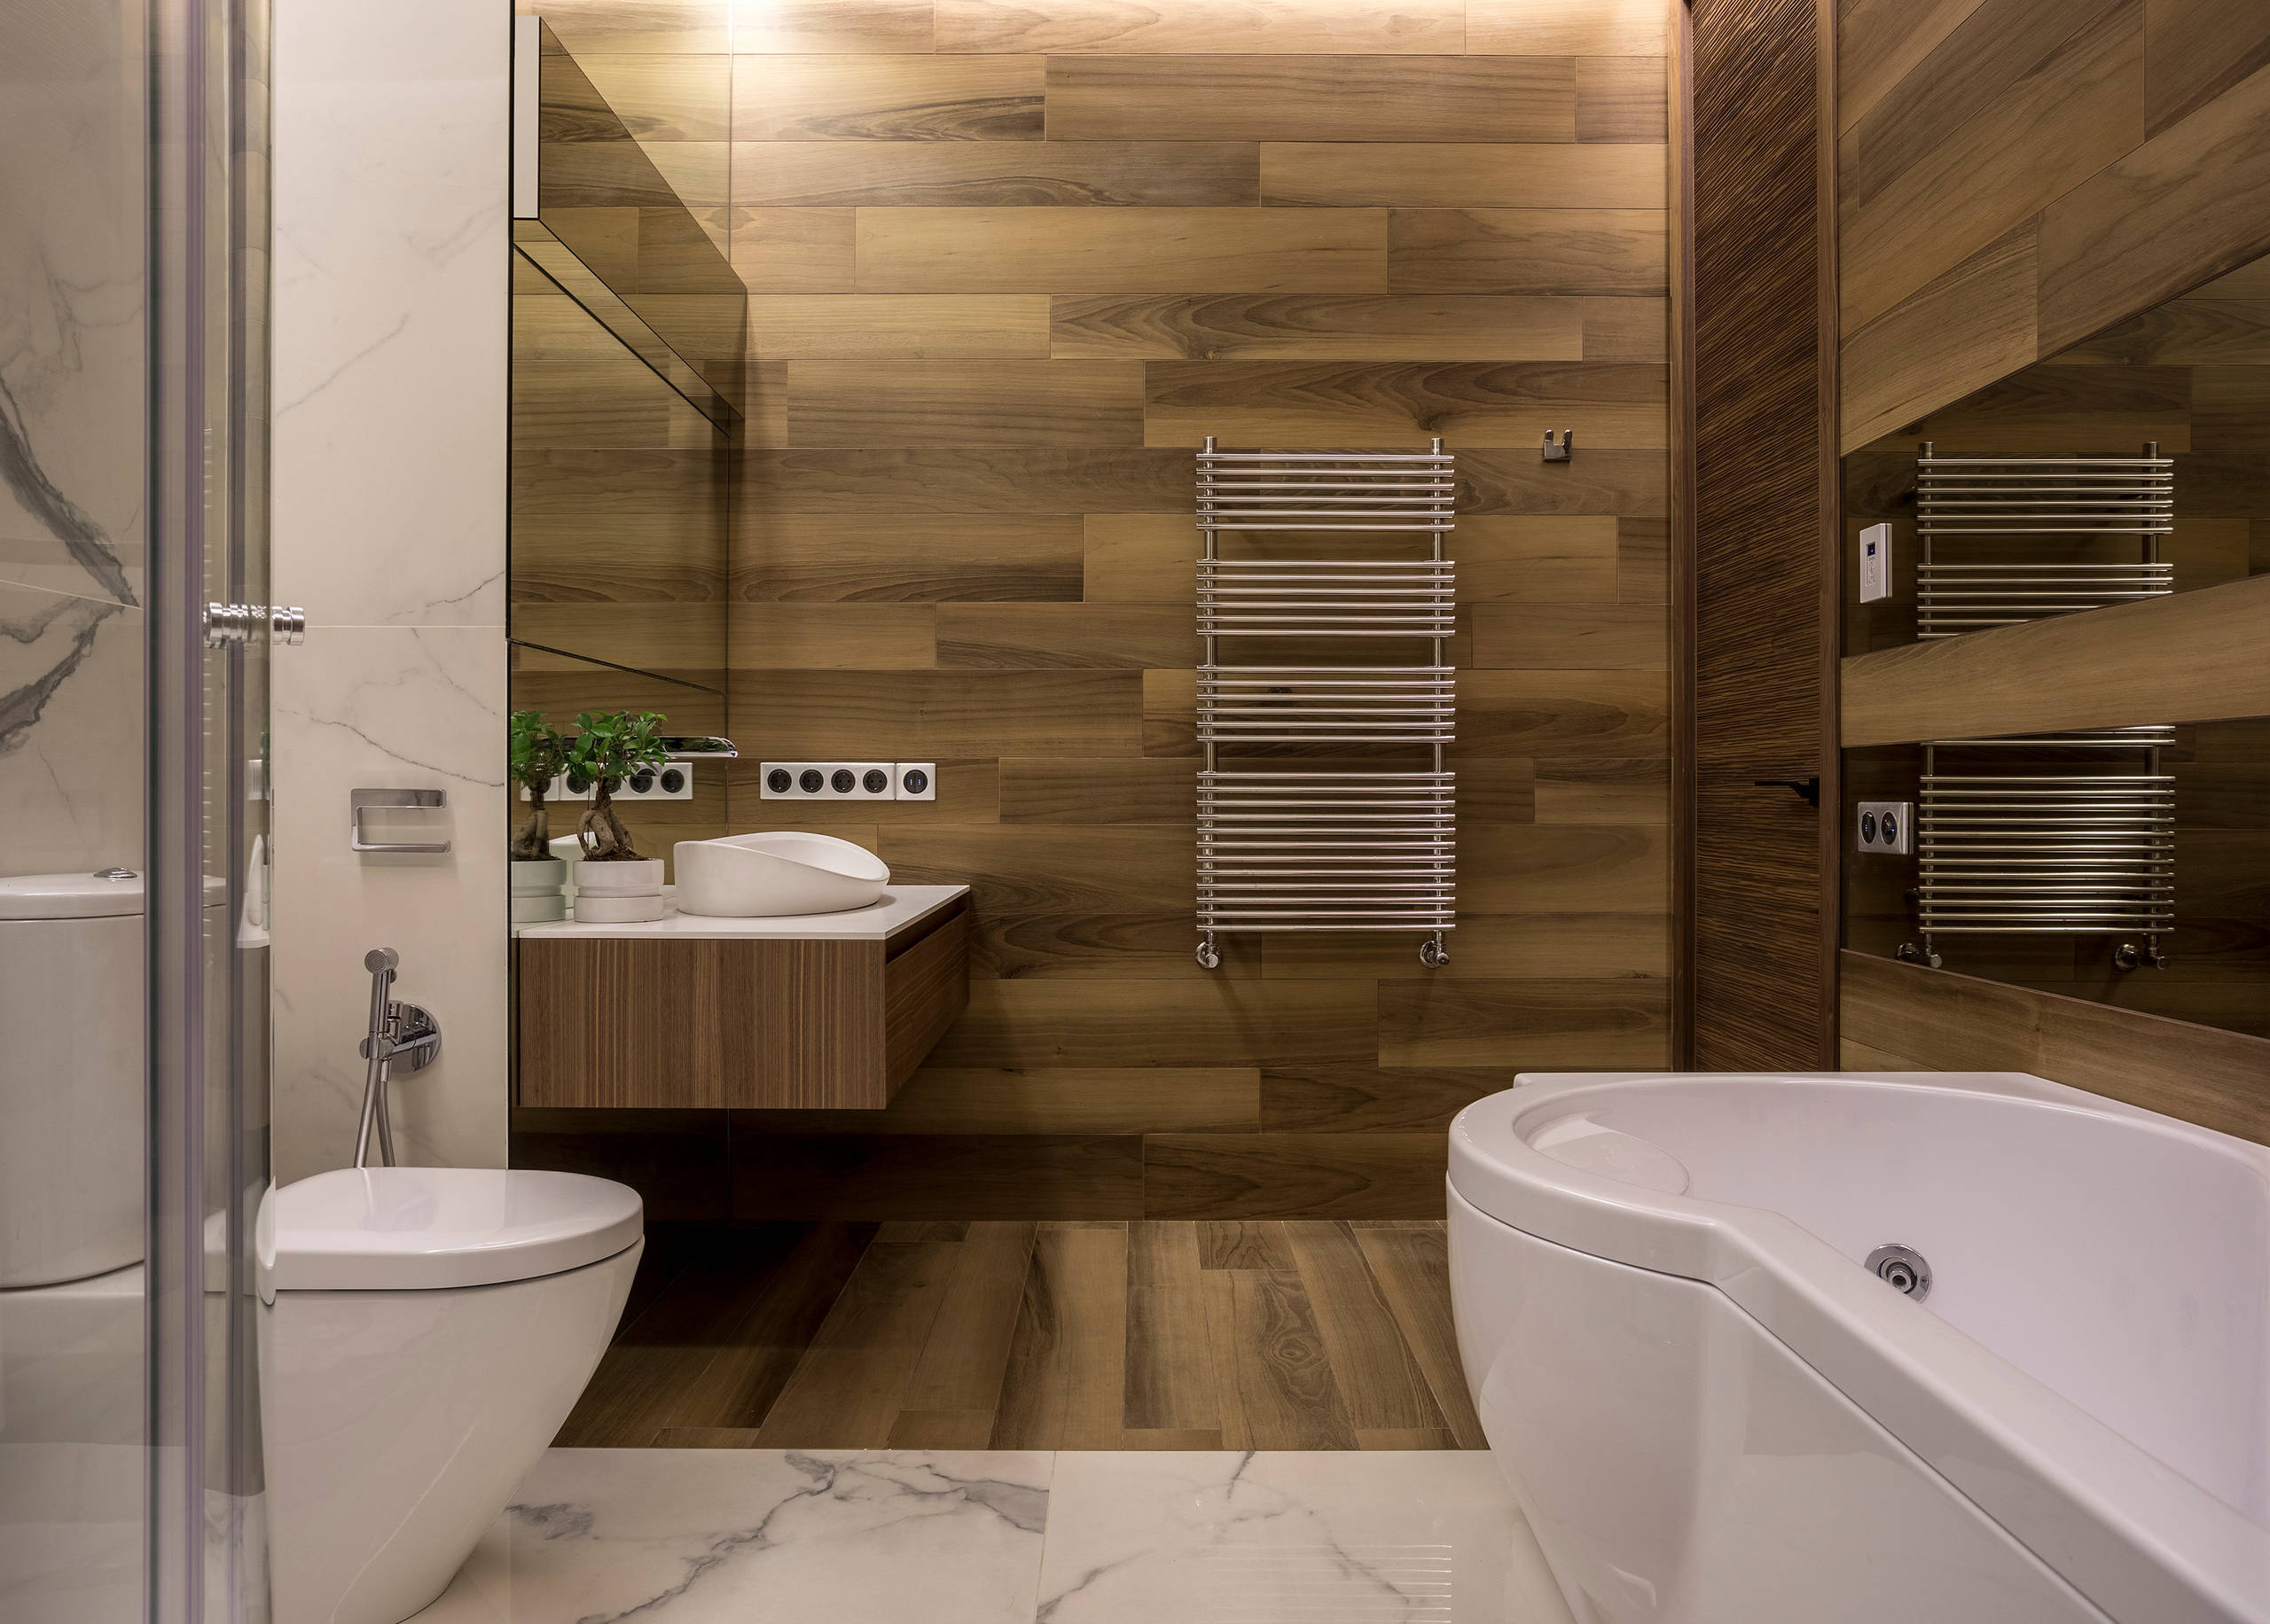 75 Beautiful Bathroom With A Hot Tub Pictures Ideas February 2021 Houzz